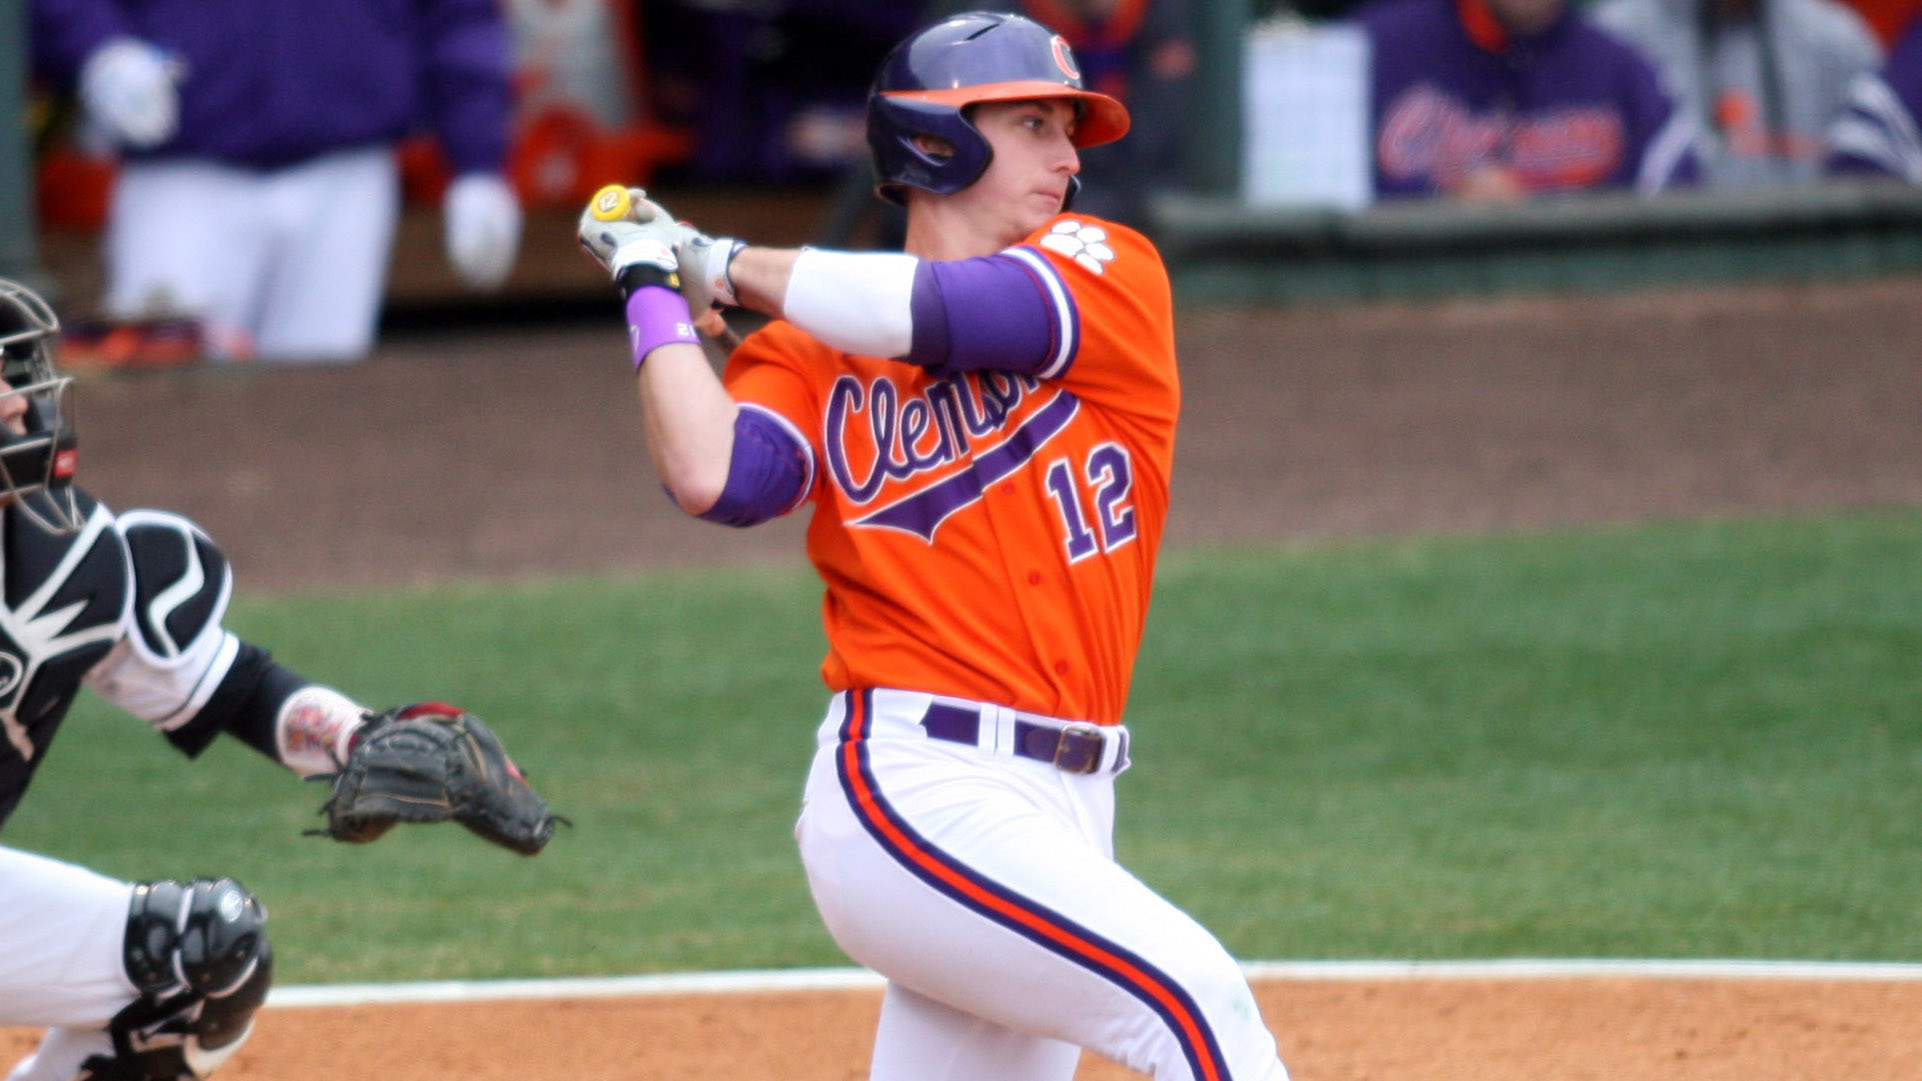 #15 Tigers Trounce Paladins 12-2 in Second Game of Doubleheader Wednesday